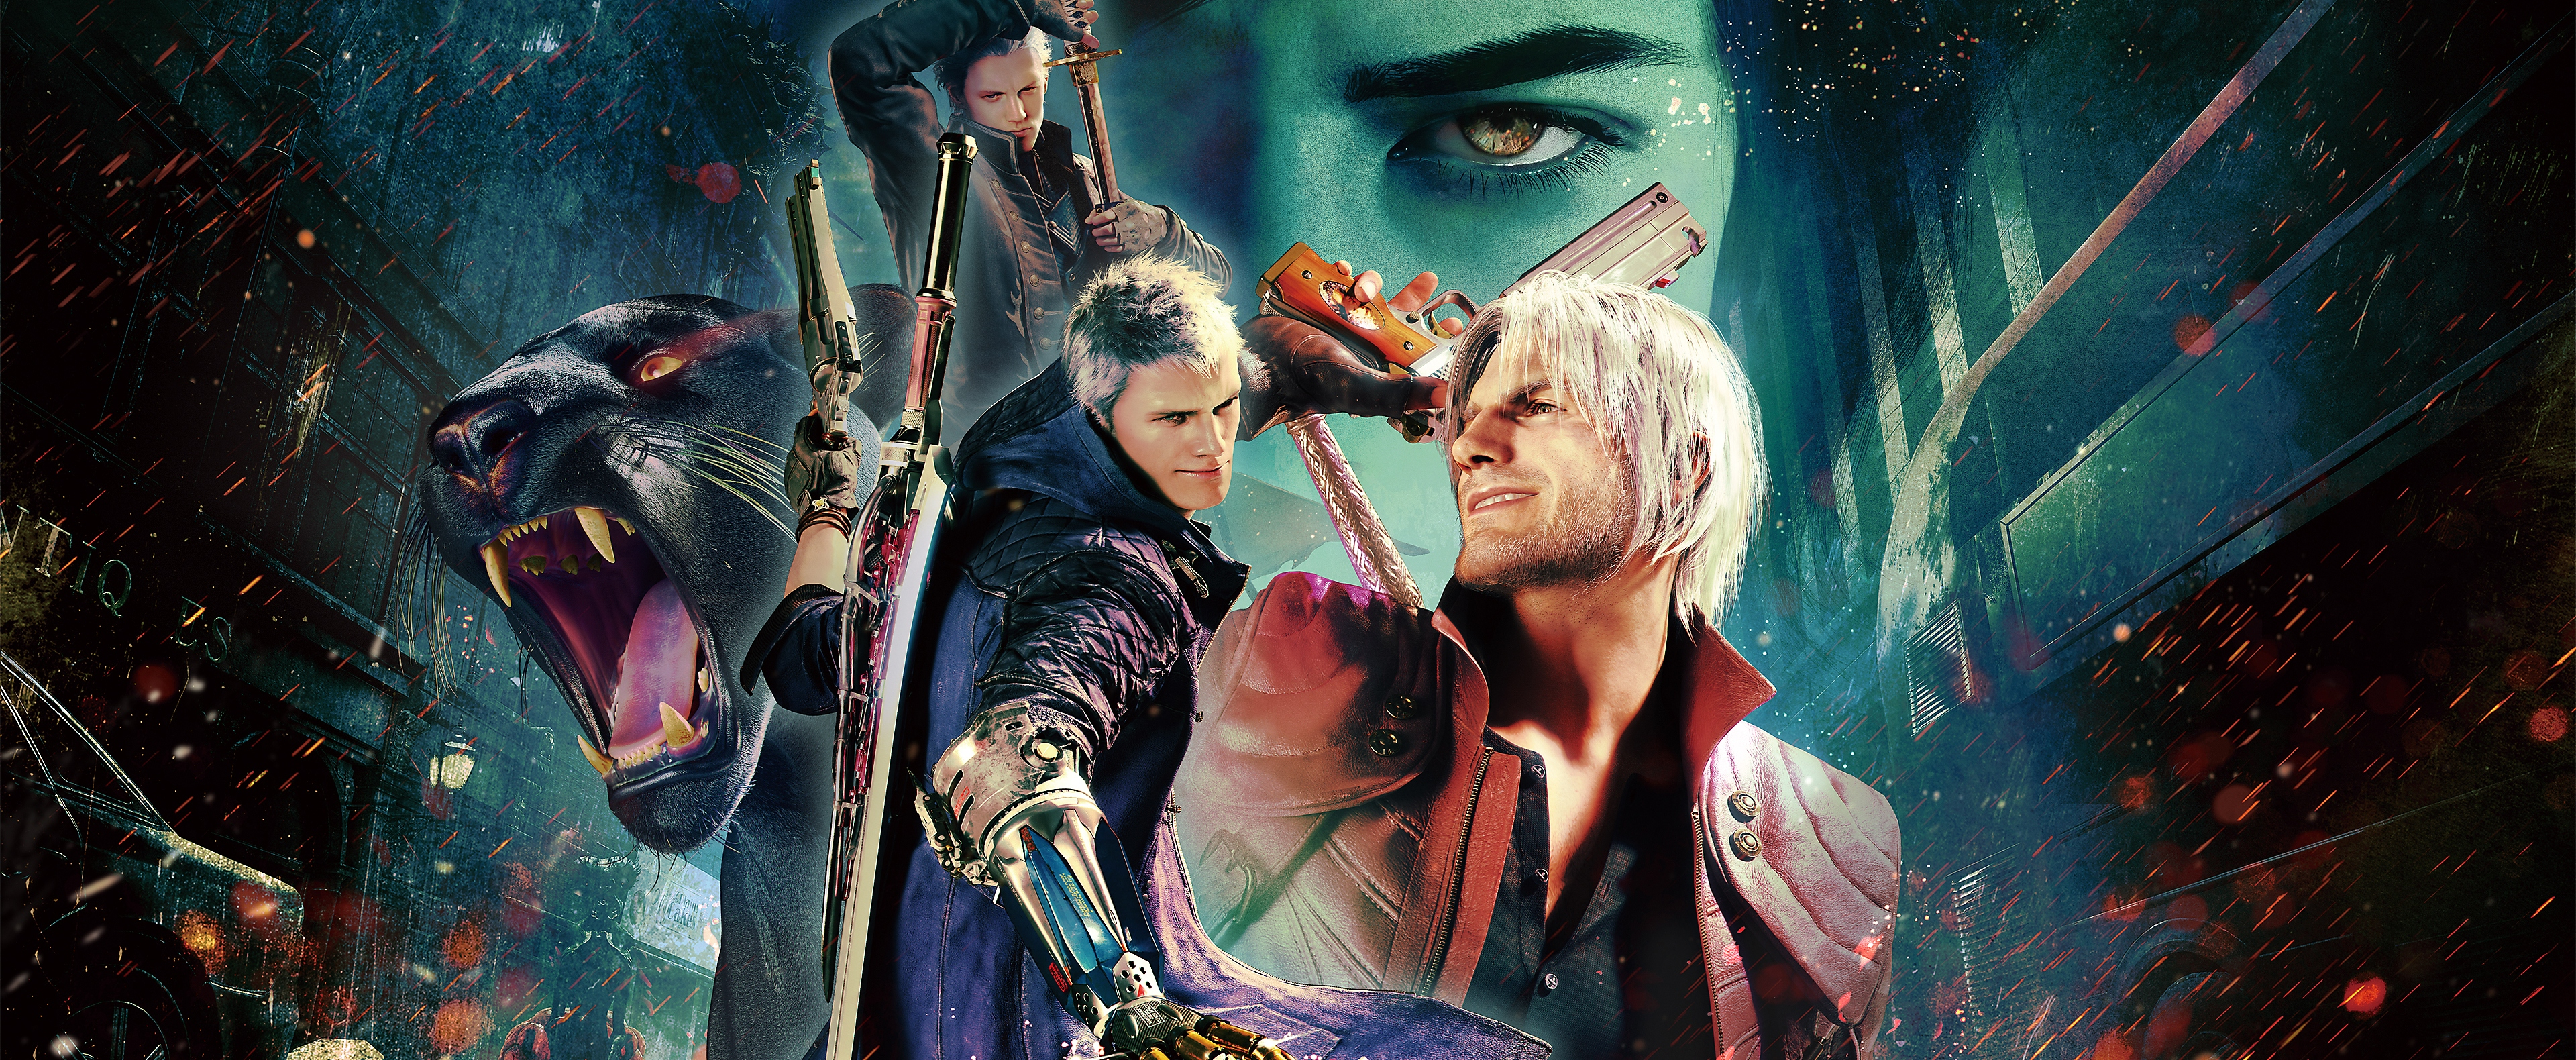 Devil May Cry 5: Special Edition - F11-/Kreuz-Taste Art